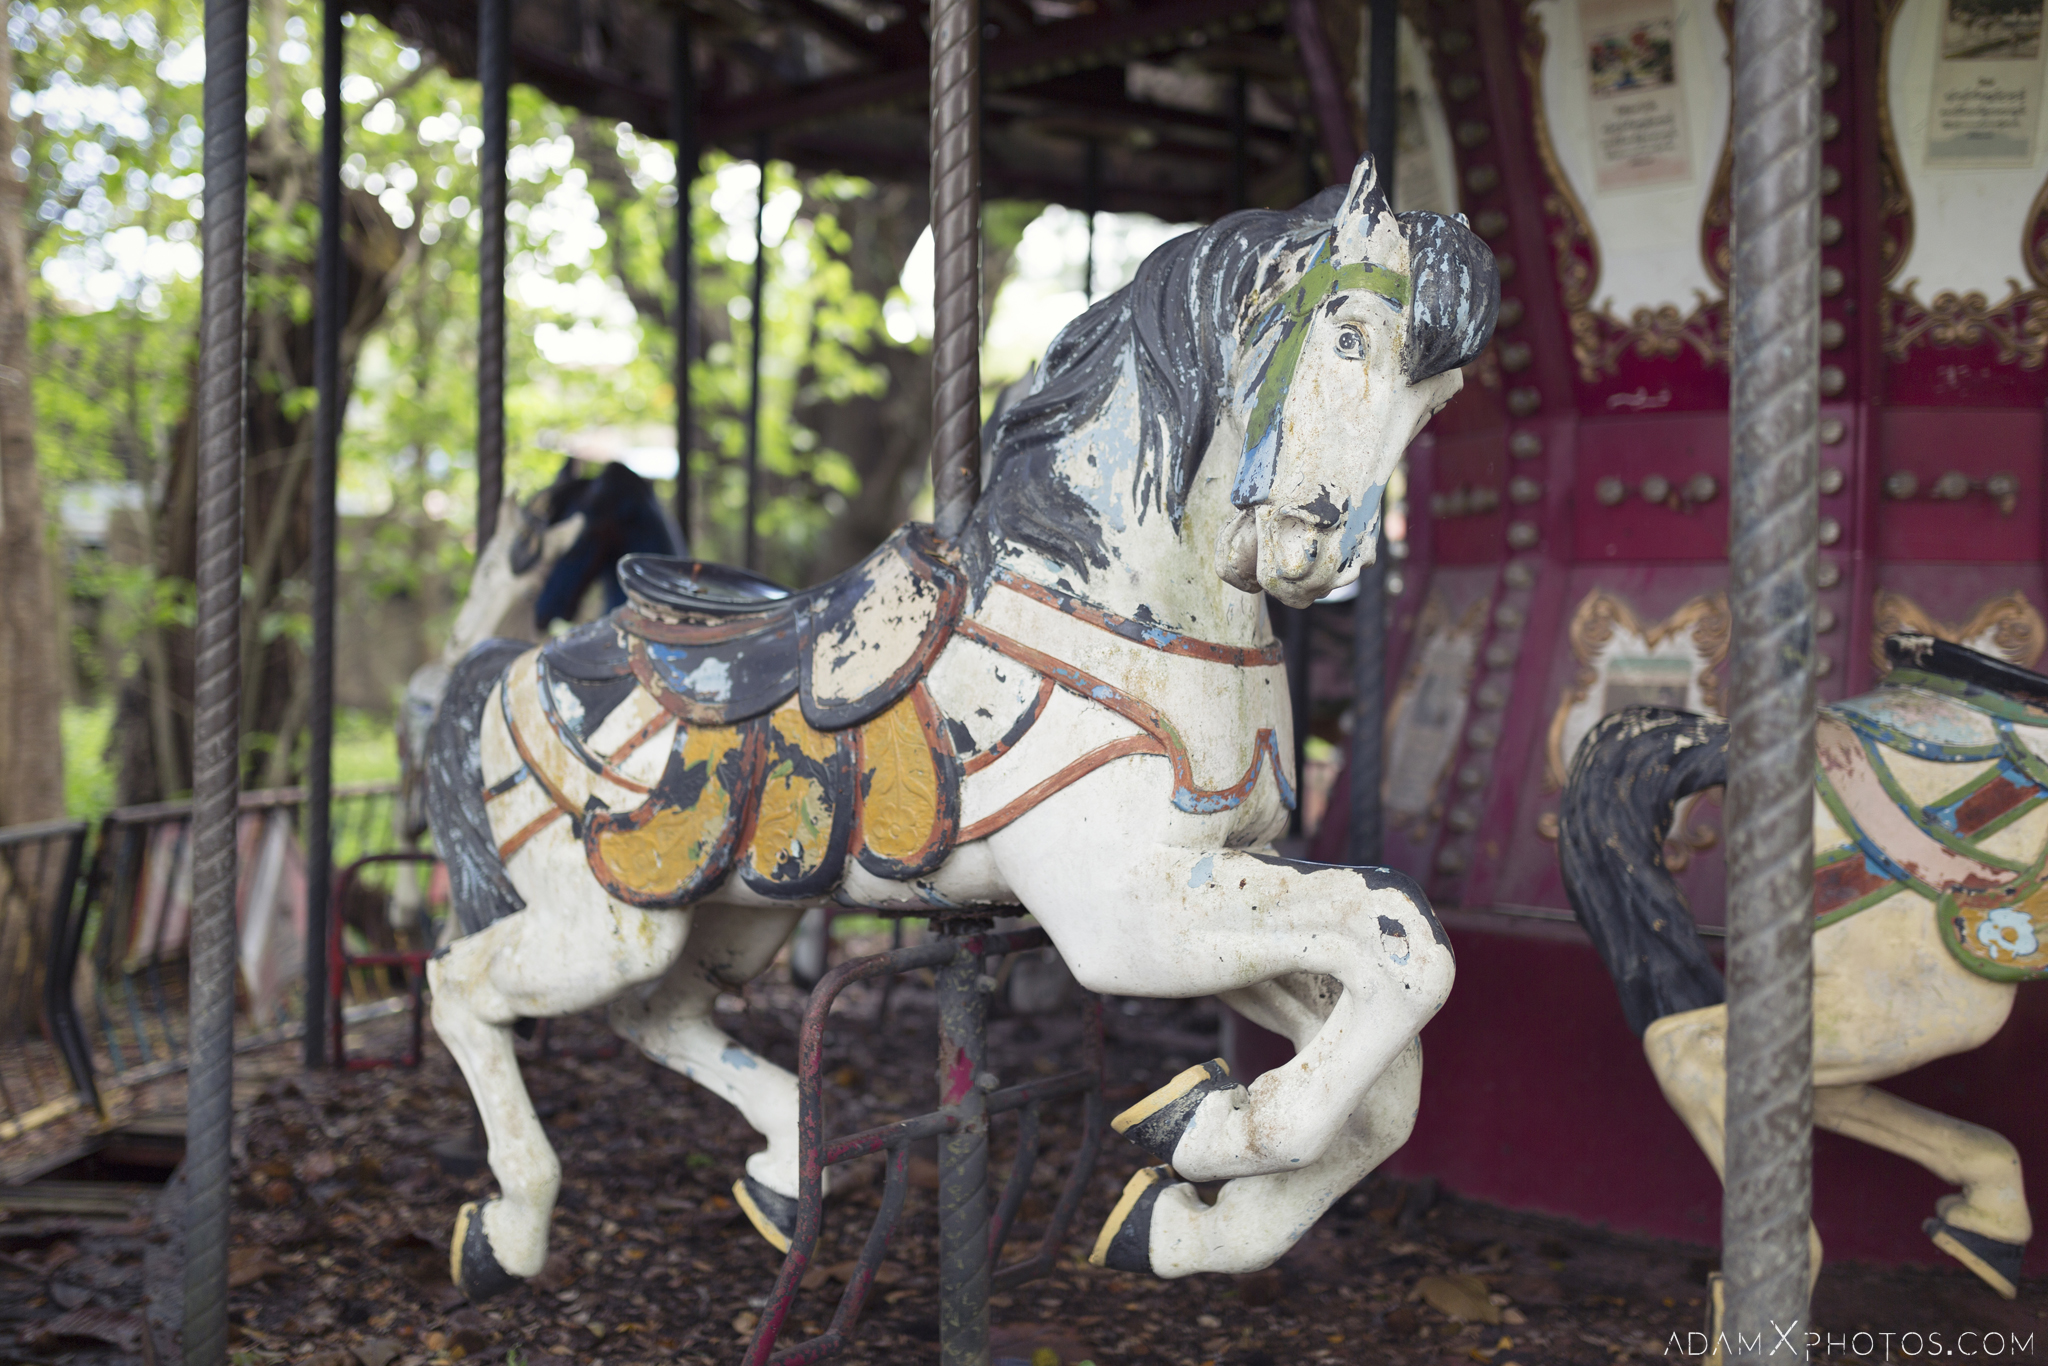 Horse Happy World Theme Park Amusement Park Fairground Myanmar Burma Yangon Rangoon Urbex Adam X Urban Exploration Access 2016 Abandoned decay lost forgotten derelict location creepy haunting eerie